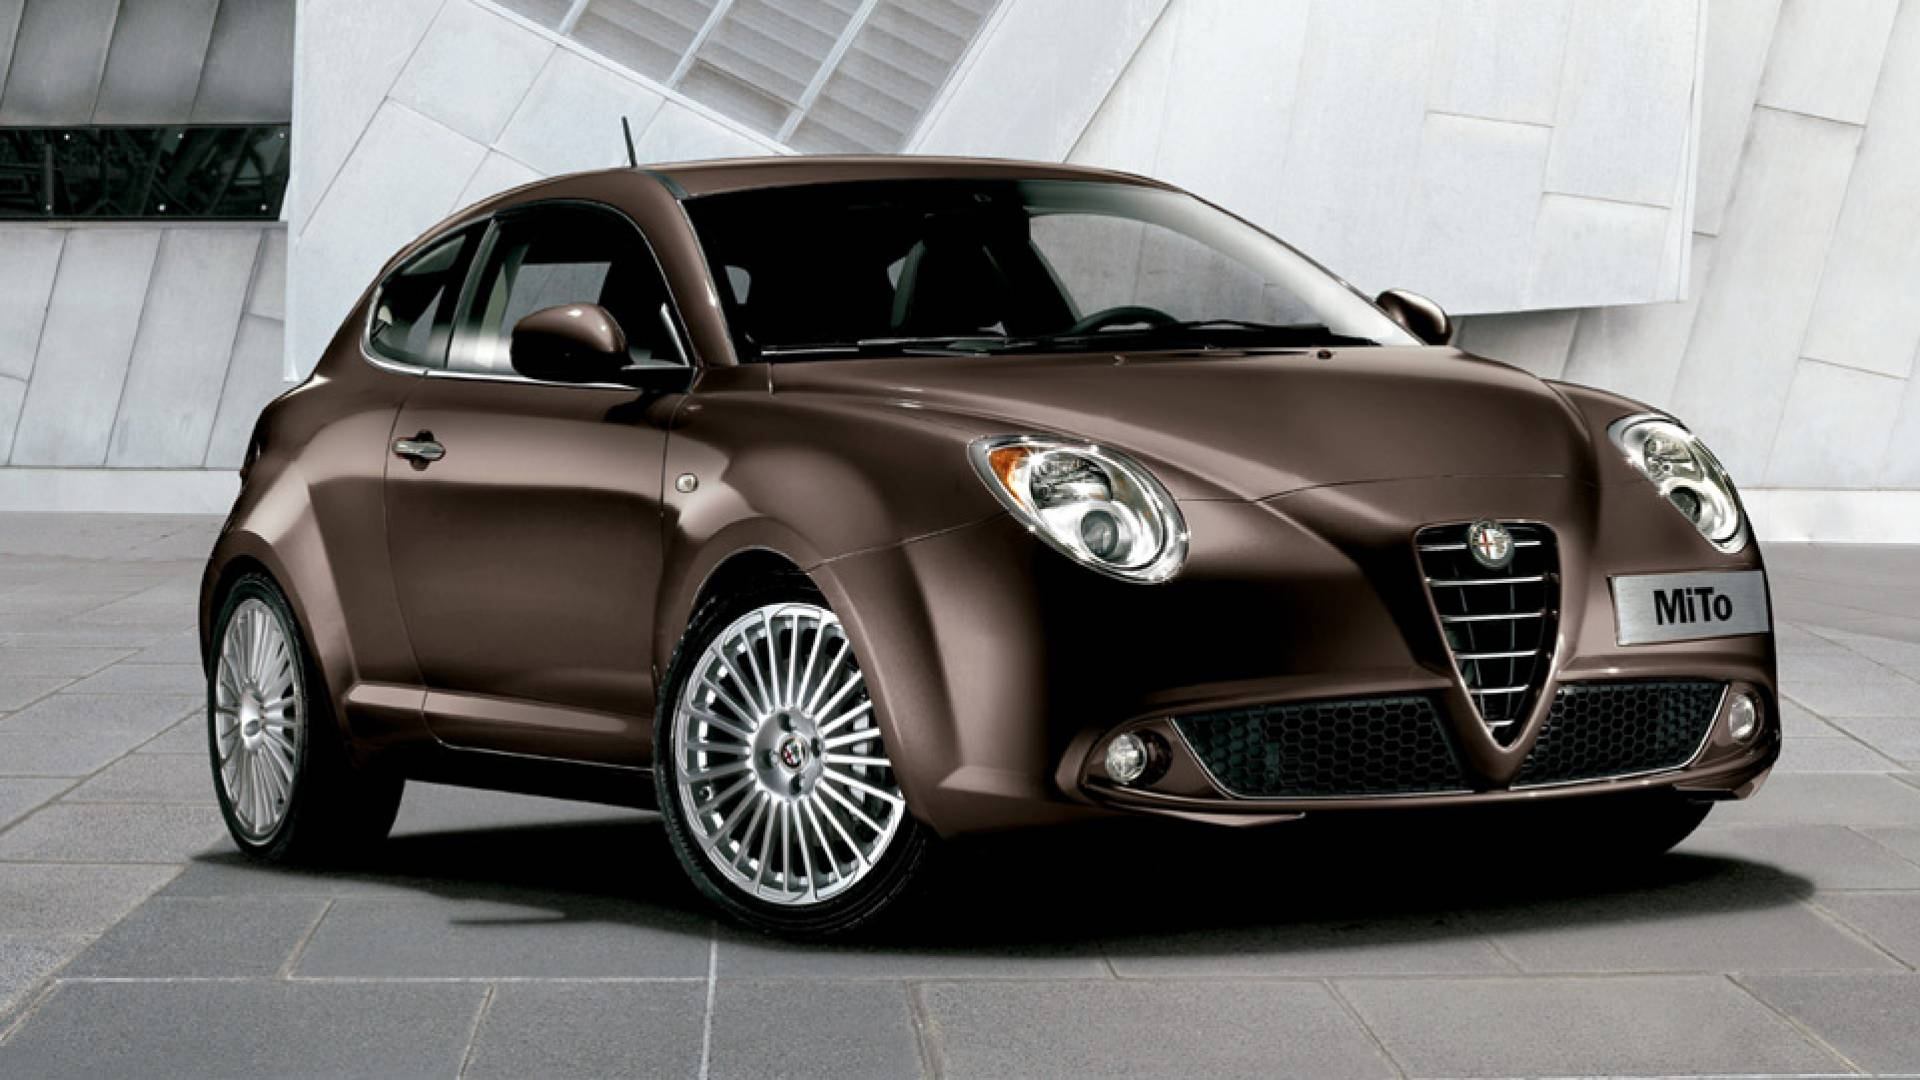 alfa romeo mito y mito quadrifoglio verde qv precios. Black Bedroom Furniture Sets. Home Design Ideas